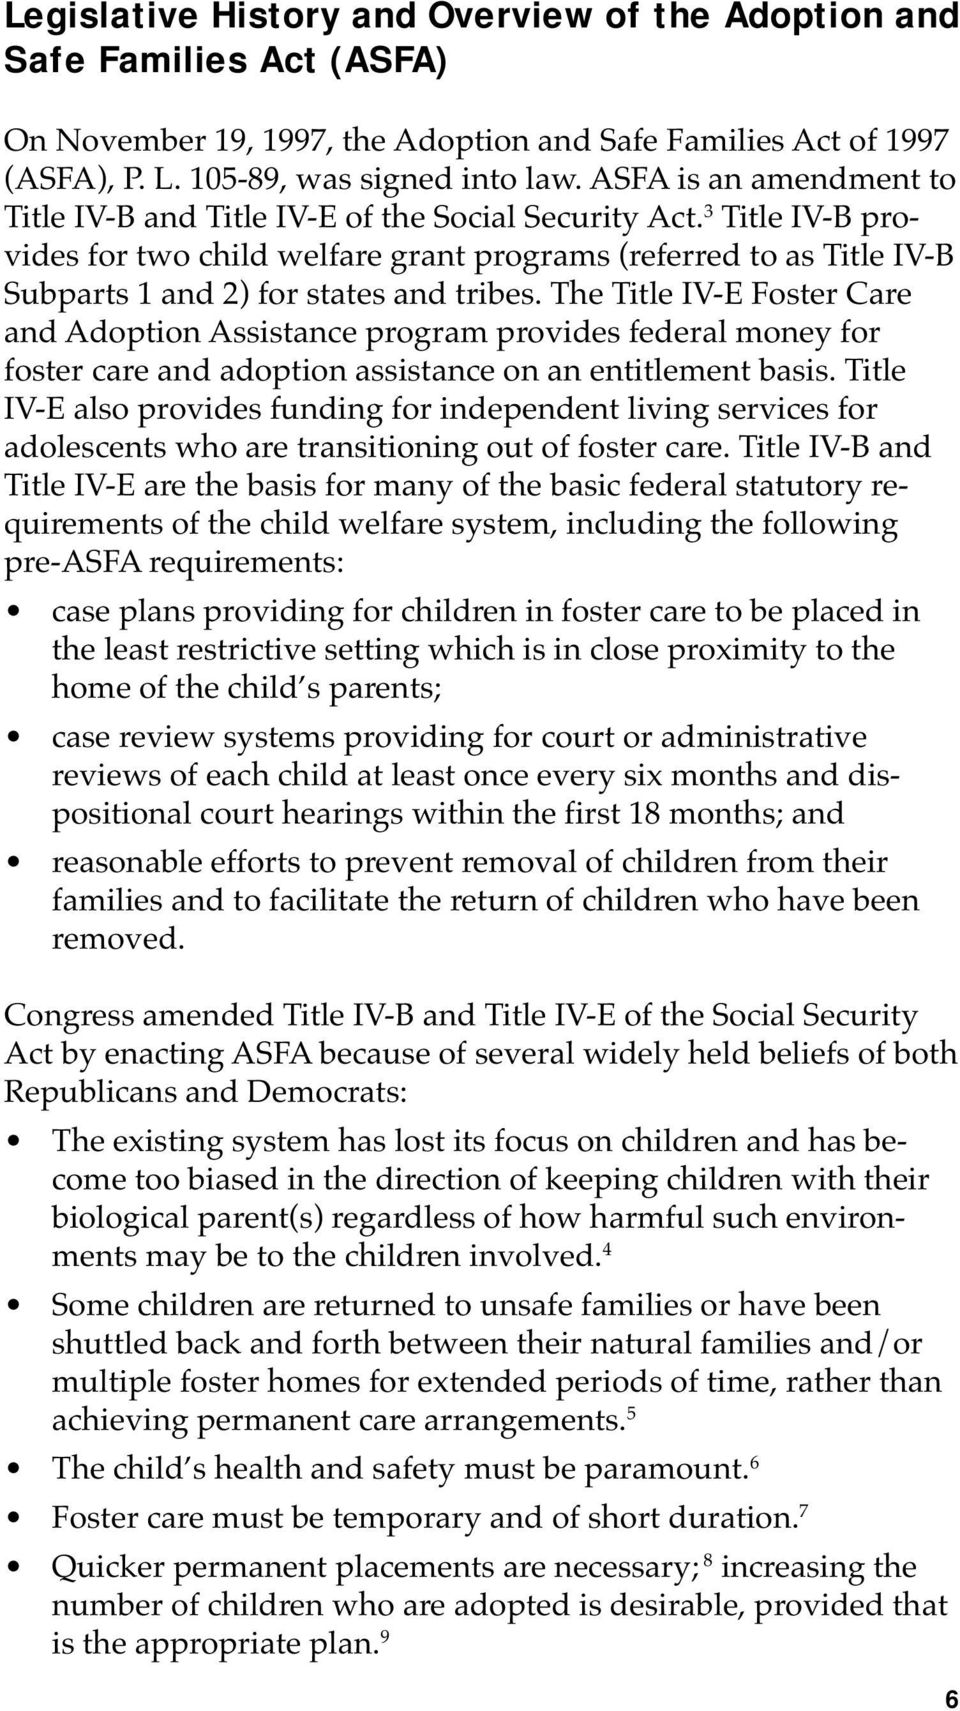 3 Title IV-B provides for two child welfare grant programs (referred to as Title IV-B Subparts 1 and 2) for states and tribes.